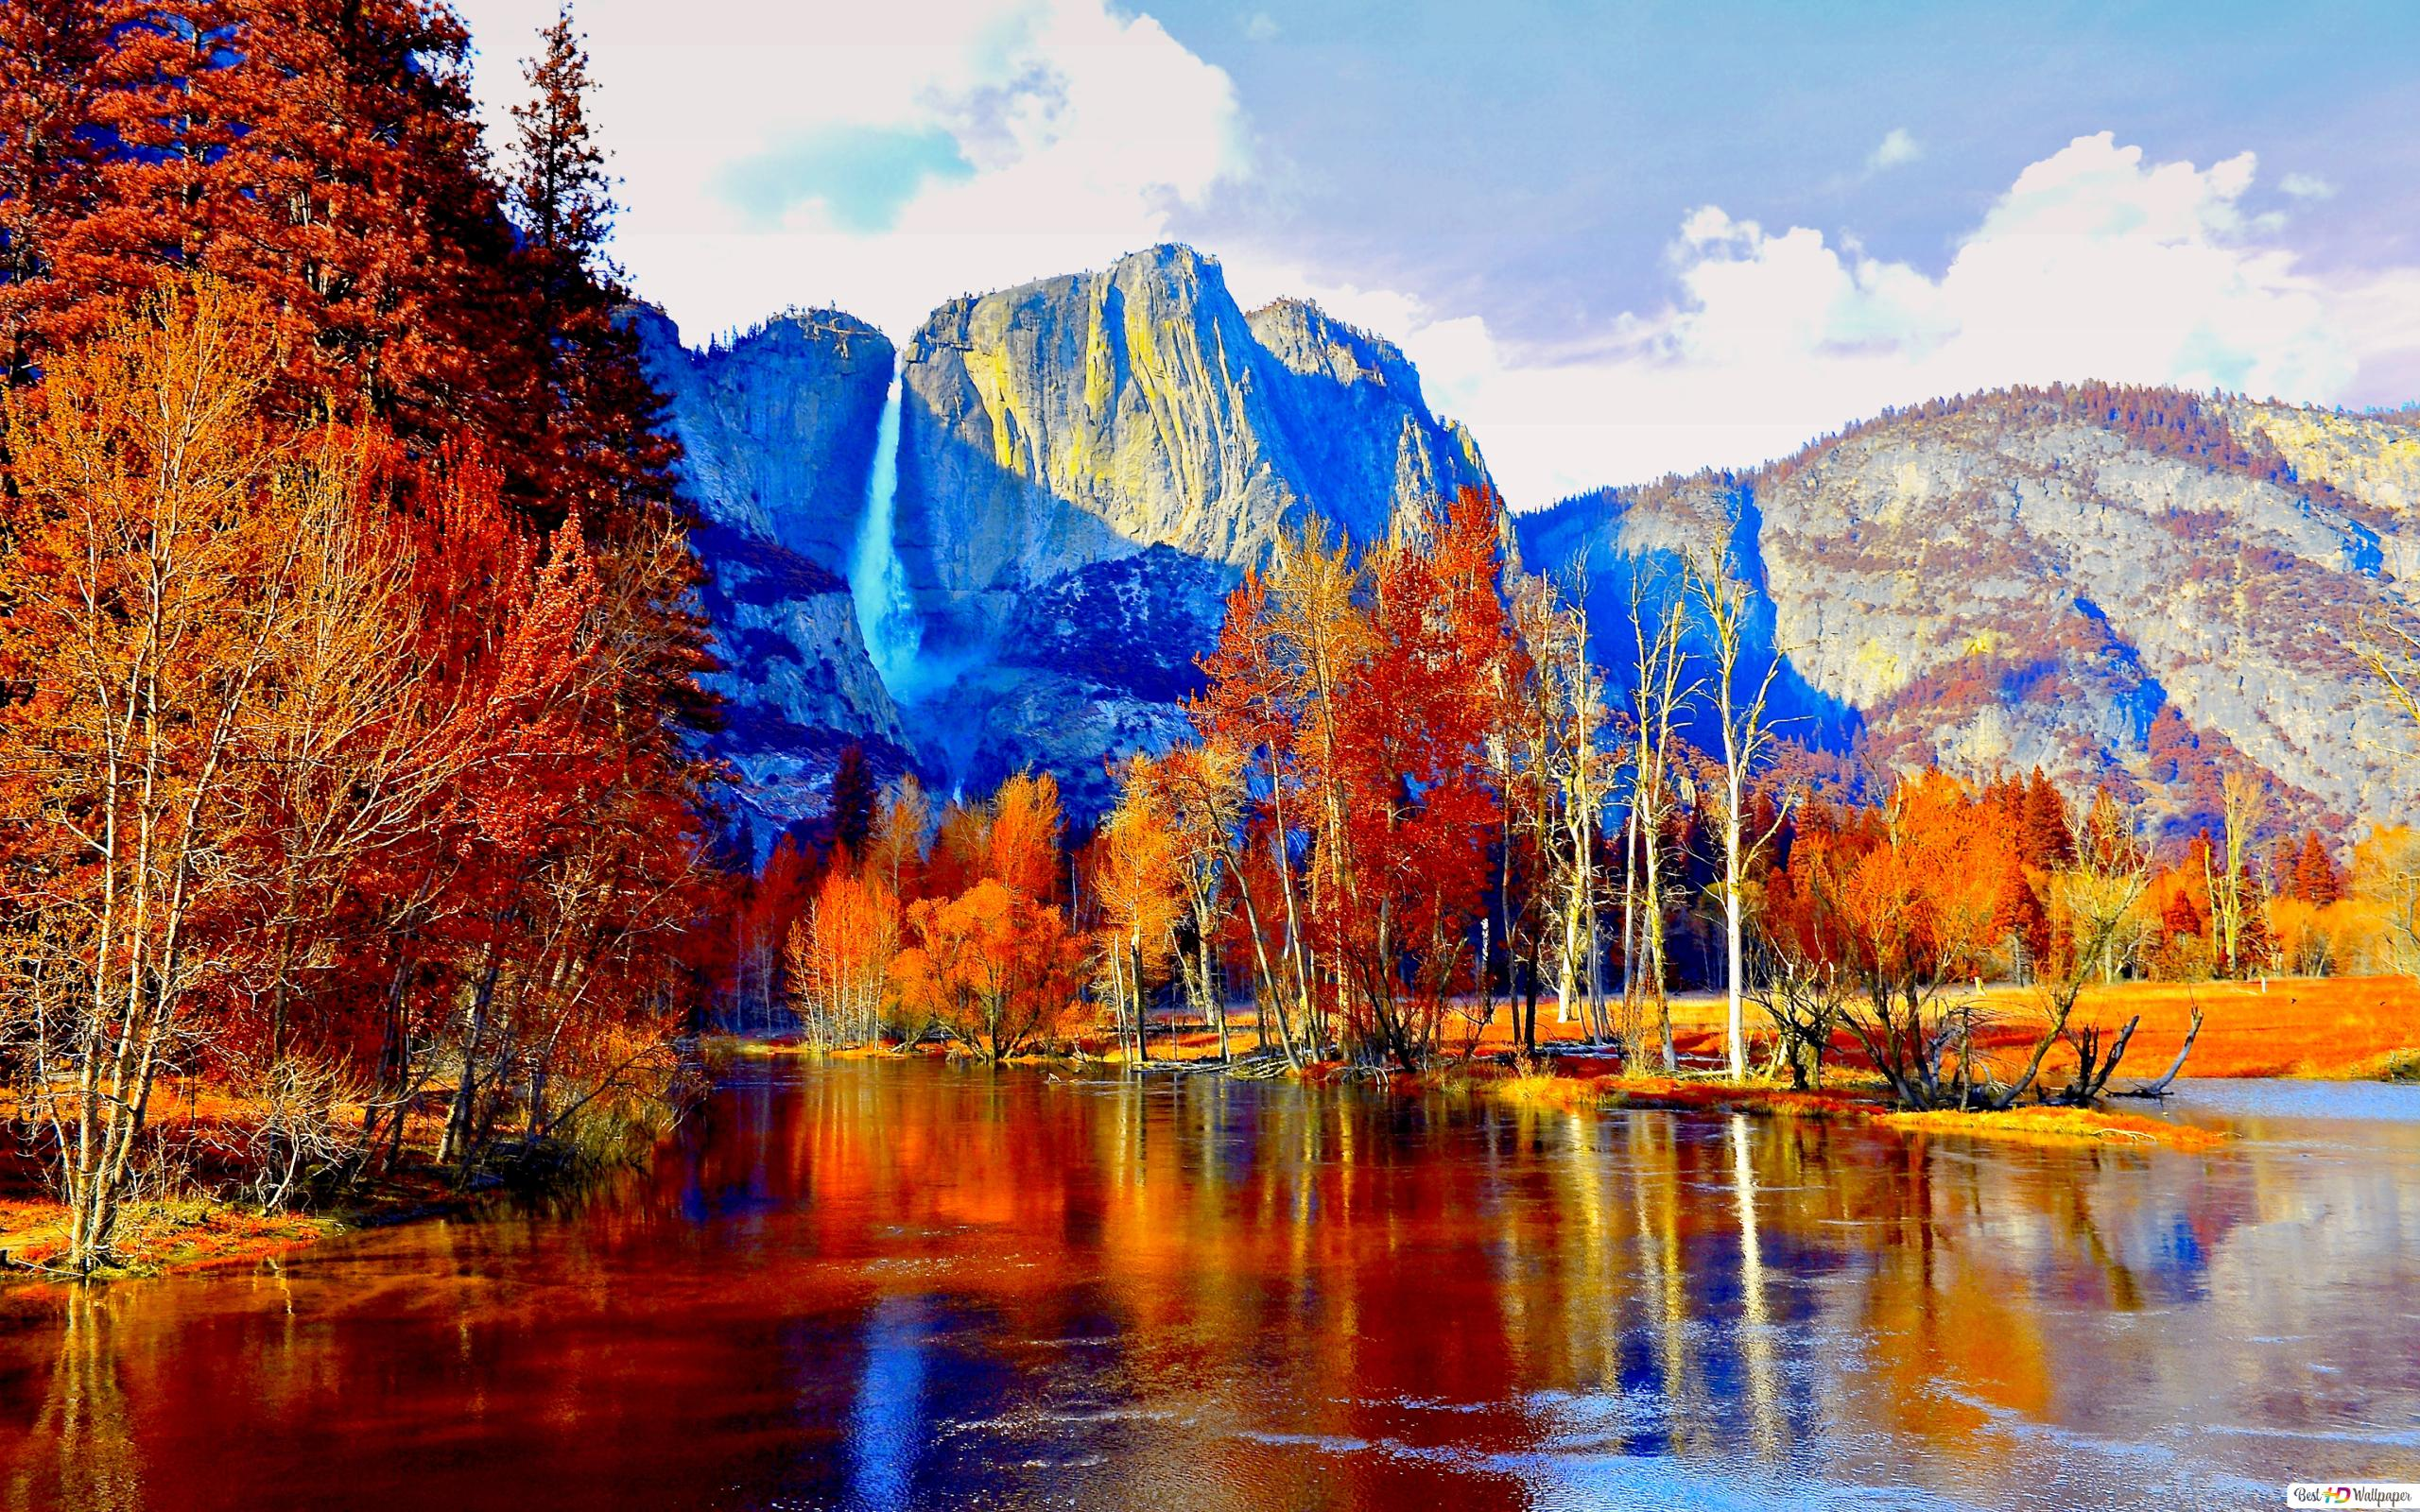 Autumn Trees In The Mountains Hd Wallpaper Download